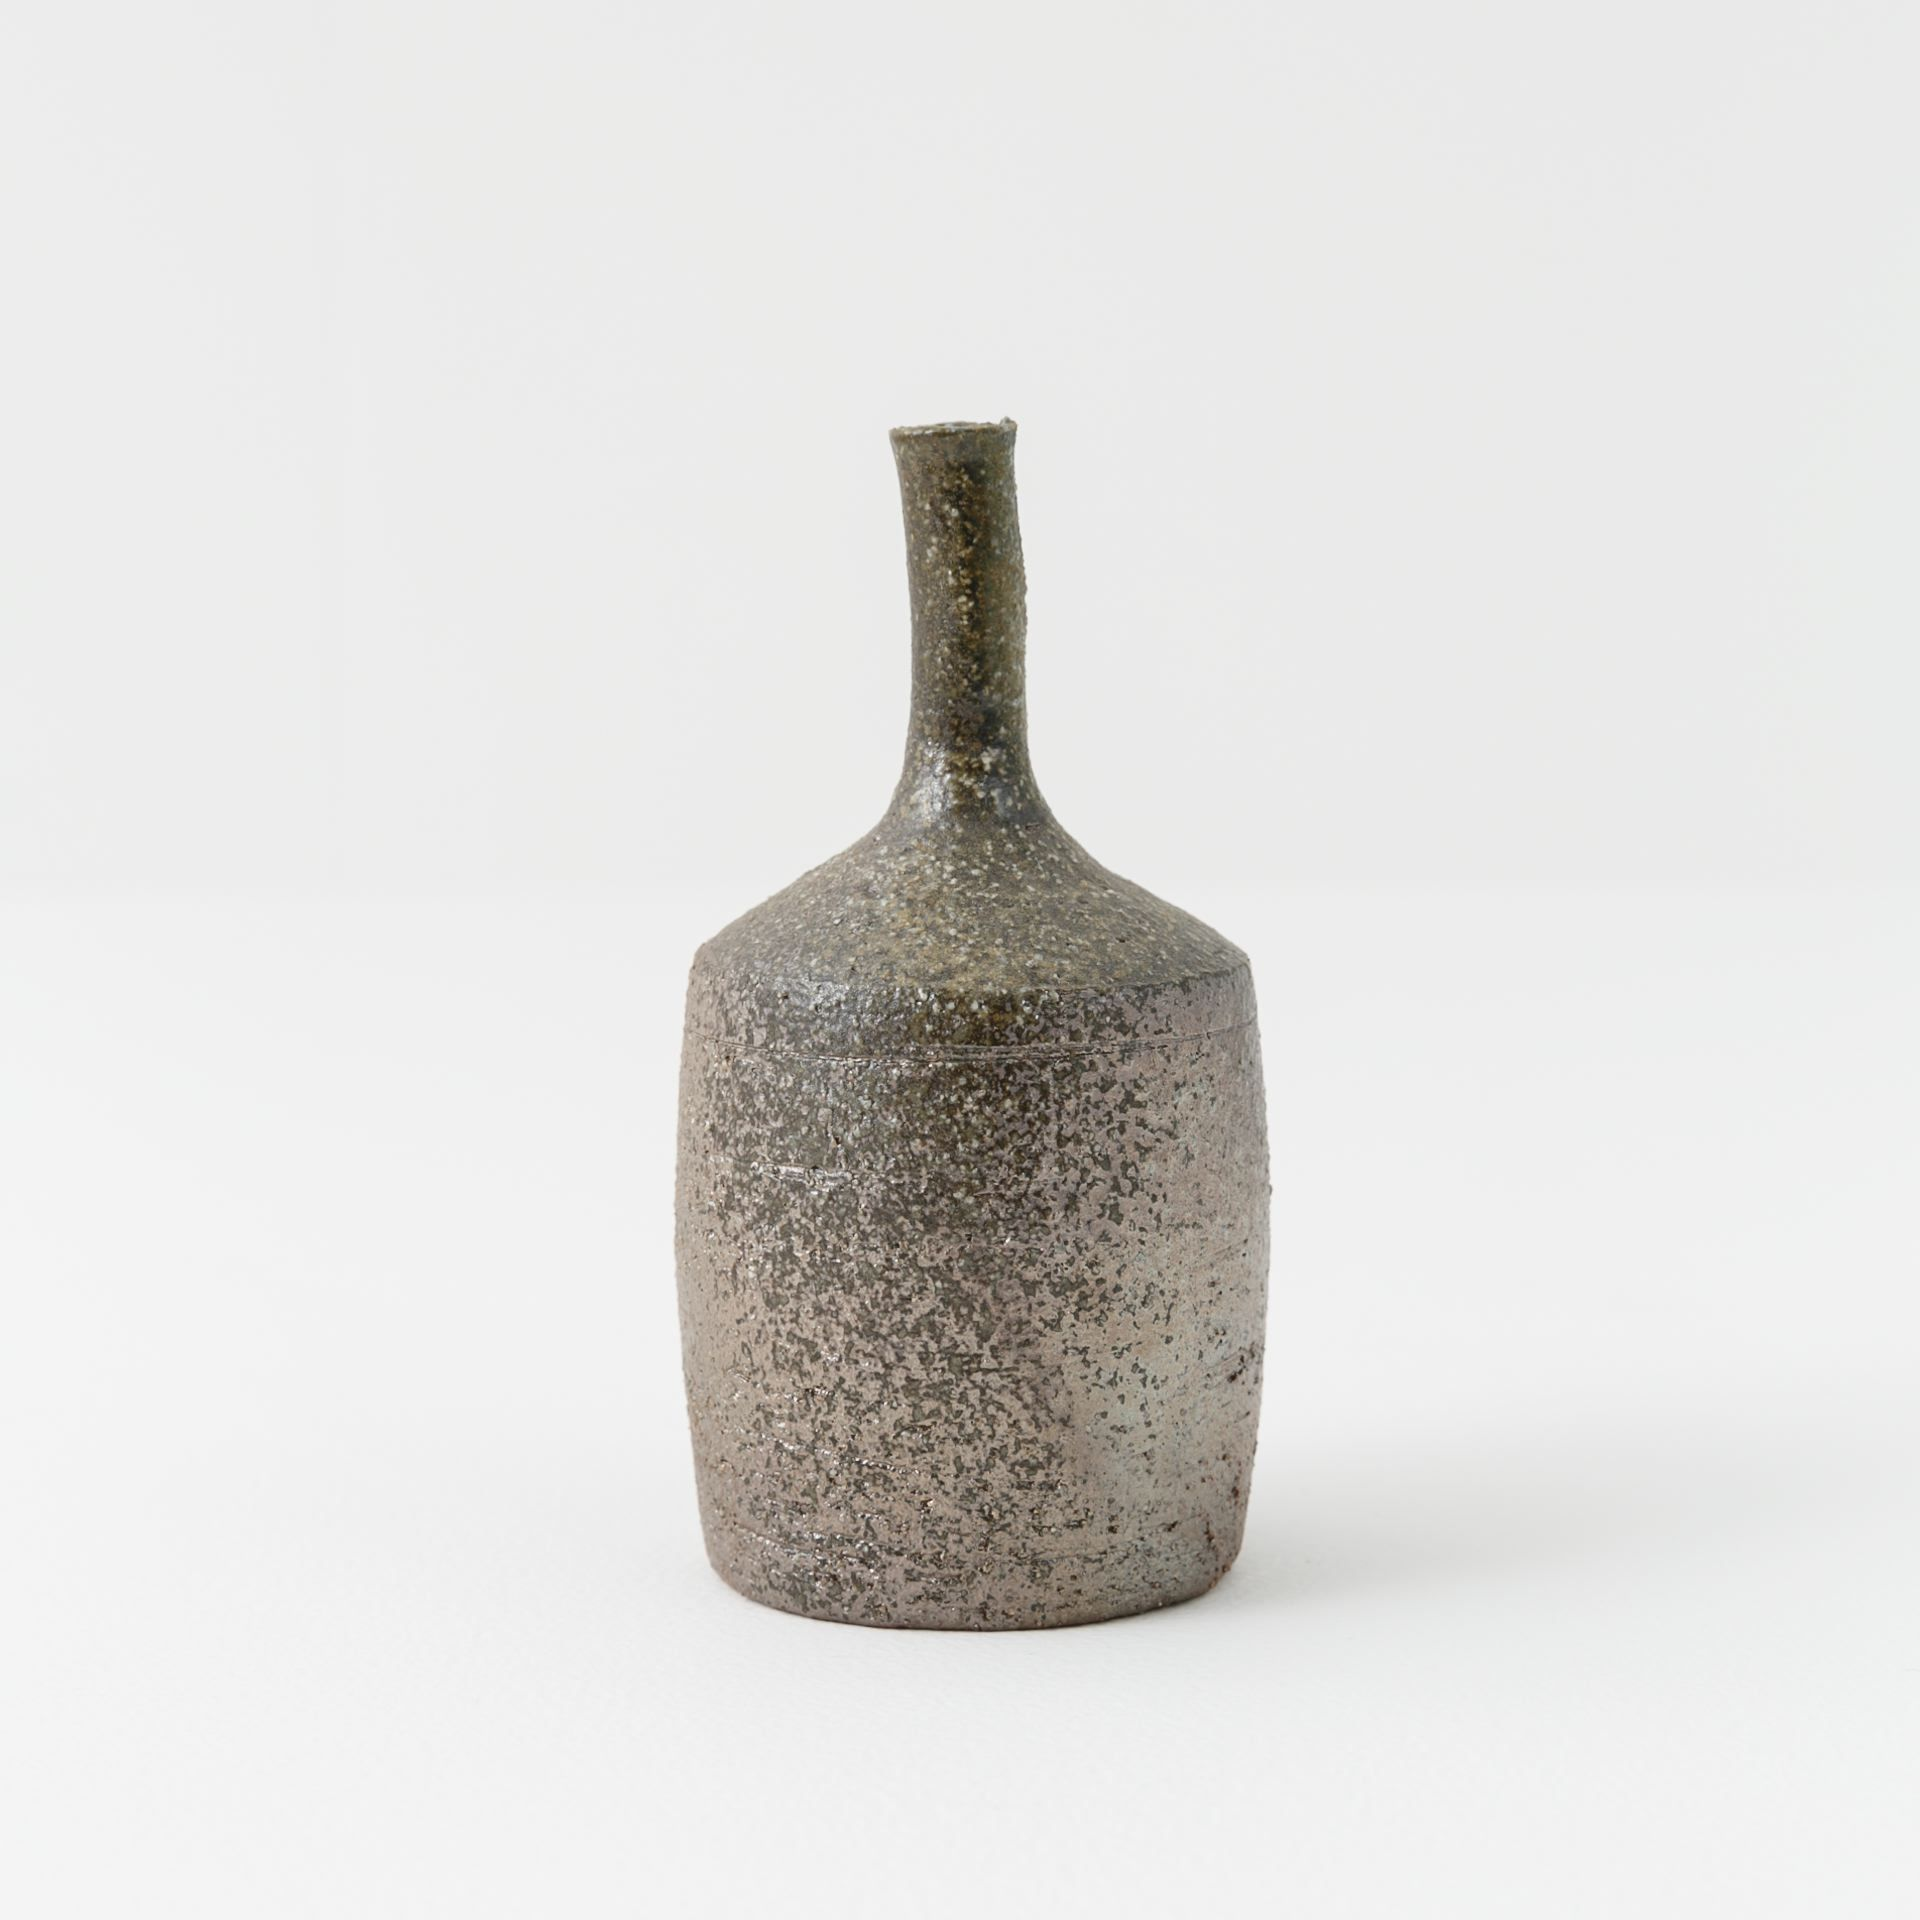 Otani Workshop Small Jar, c. 2014 Ceramic 4 7/8 x 2 3/8 x 2 3/8 inches